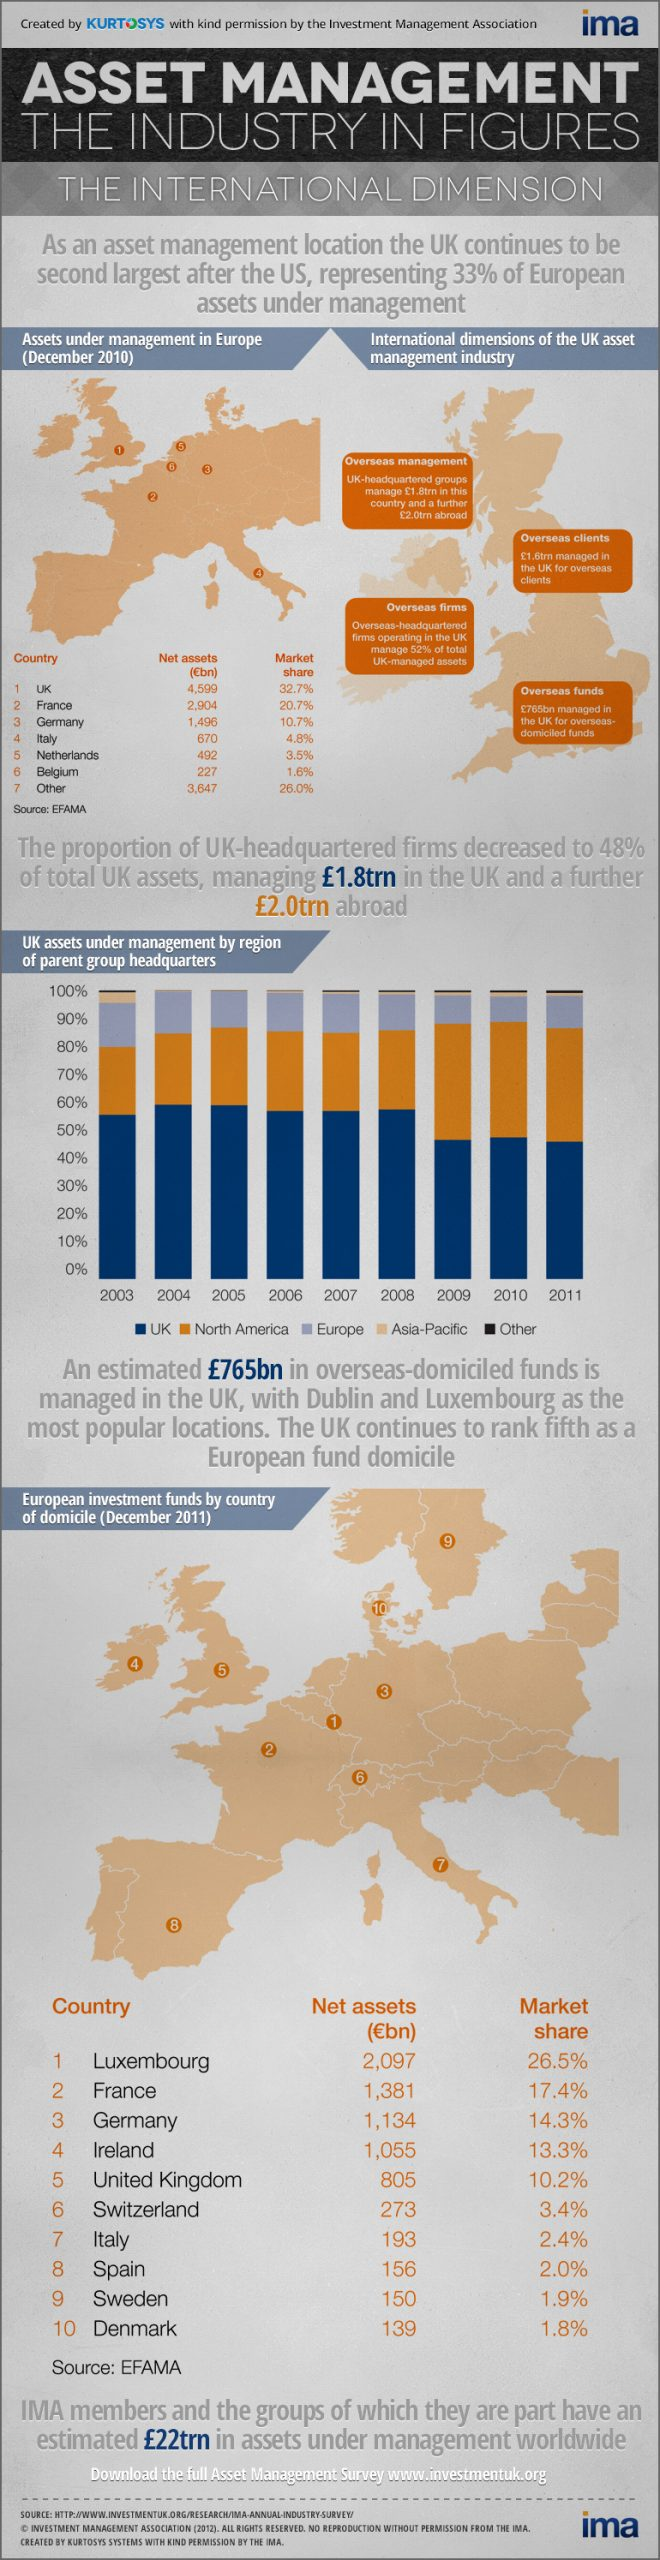 UK Asset Management in Figures: The International Dimension [INFOGRAPHIC] 1